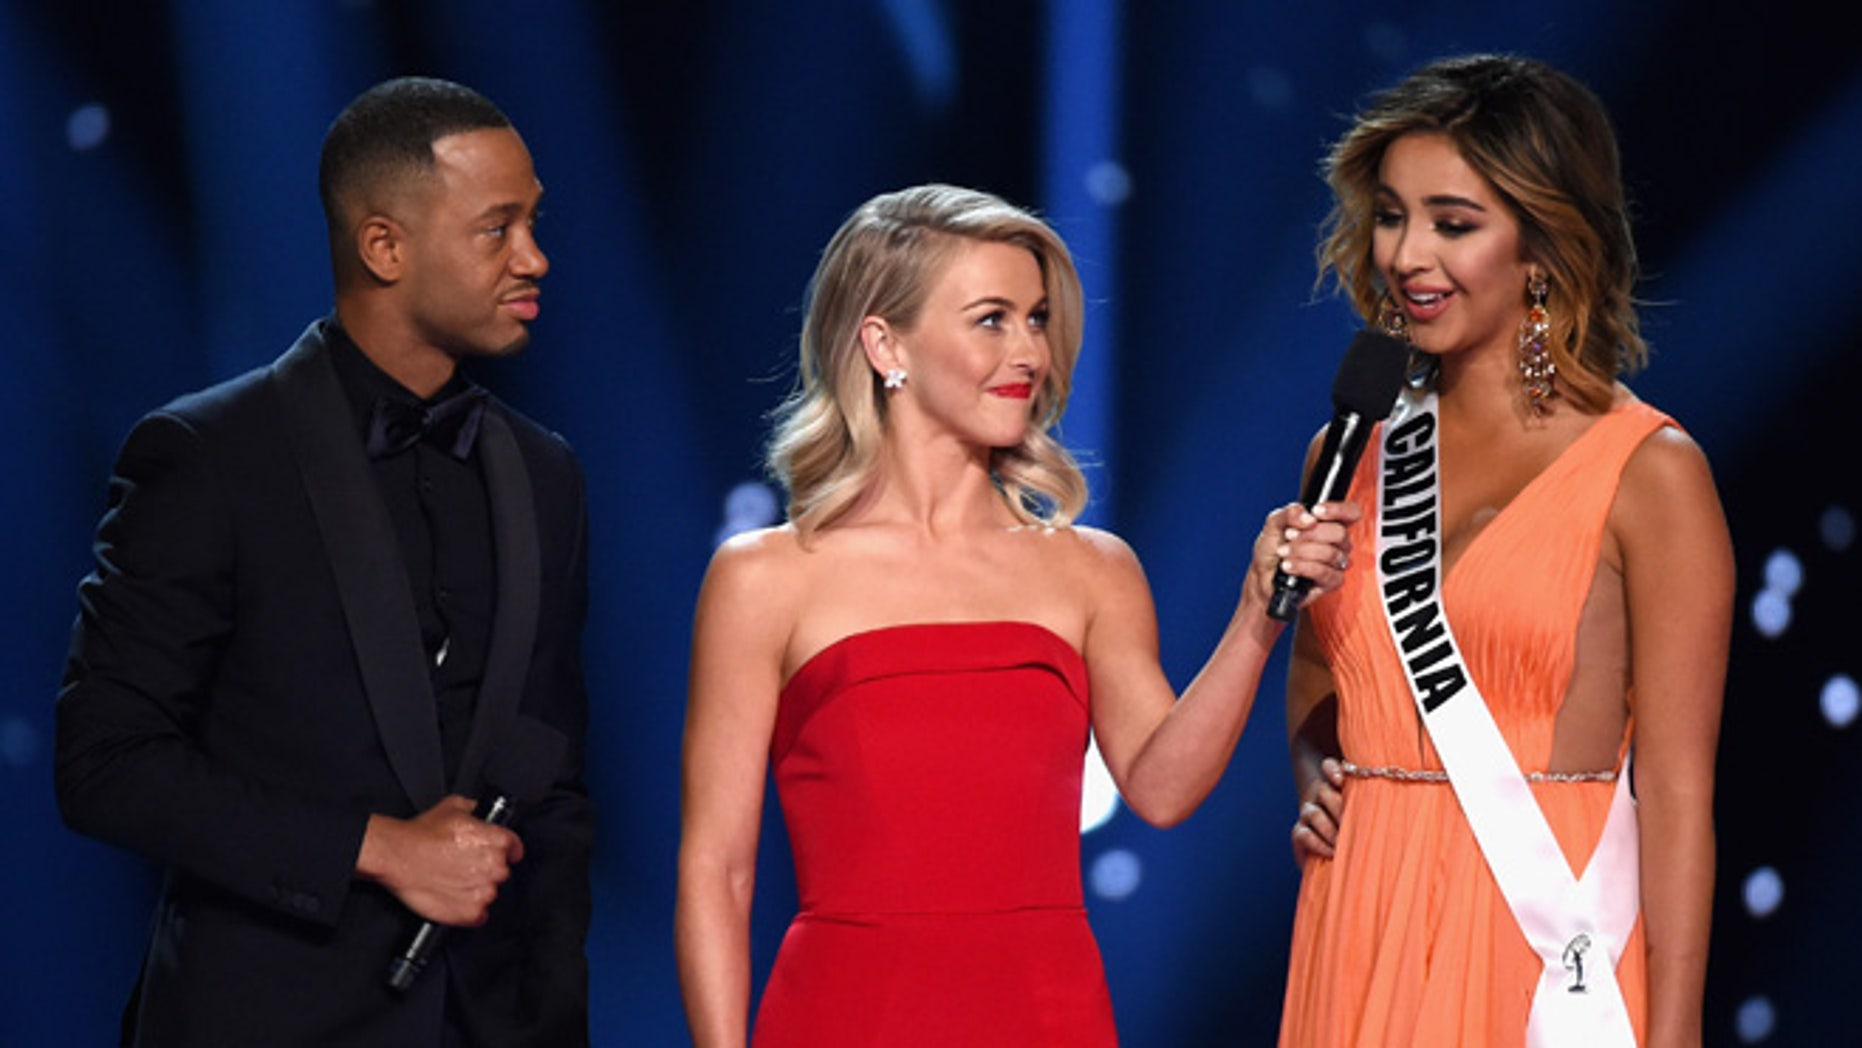 LAS VEGAS, NV - JUNE 05:  Miss California USA 2016 Nadia Mejia (R) competes in the interview portion as hosts Terrence J (L) and Julianne Hough (C) speak onstage during the 2016 Miss USA pageant at T-Mobile Arena on June 5, 2016 in Las Vegas, Nevada.  (Photo by Ethan Miller/Getty Images)